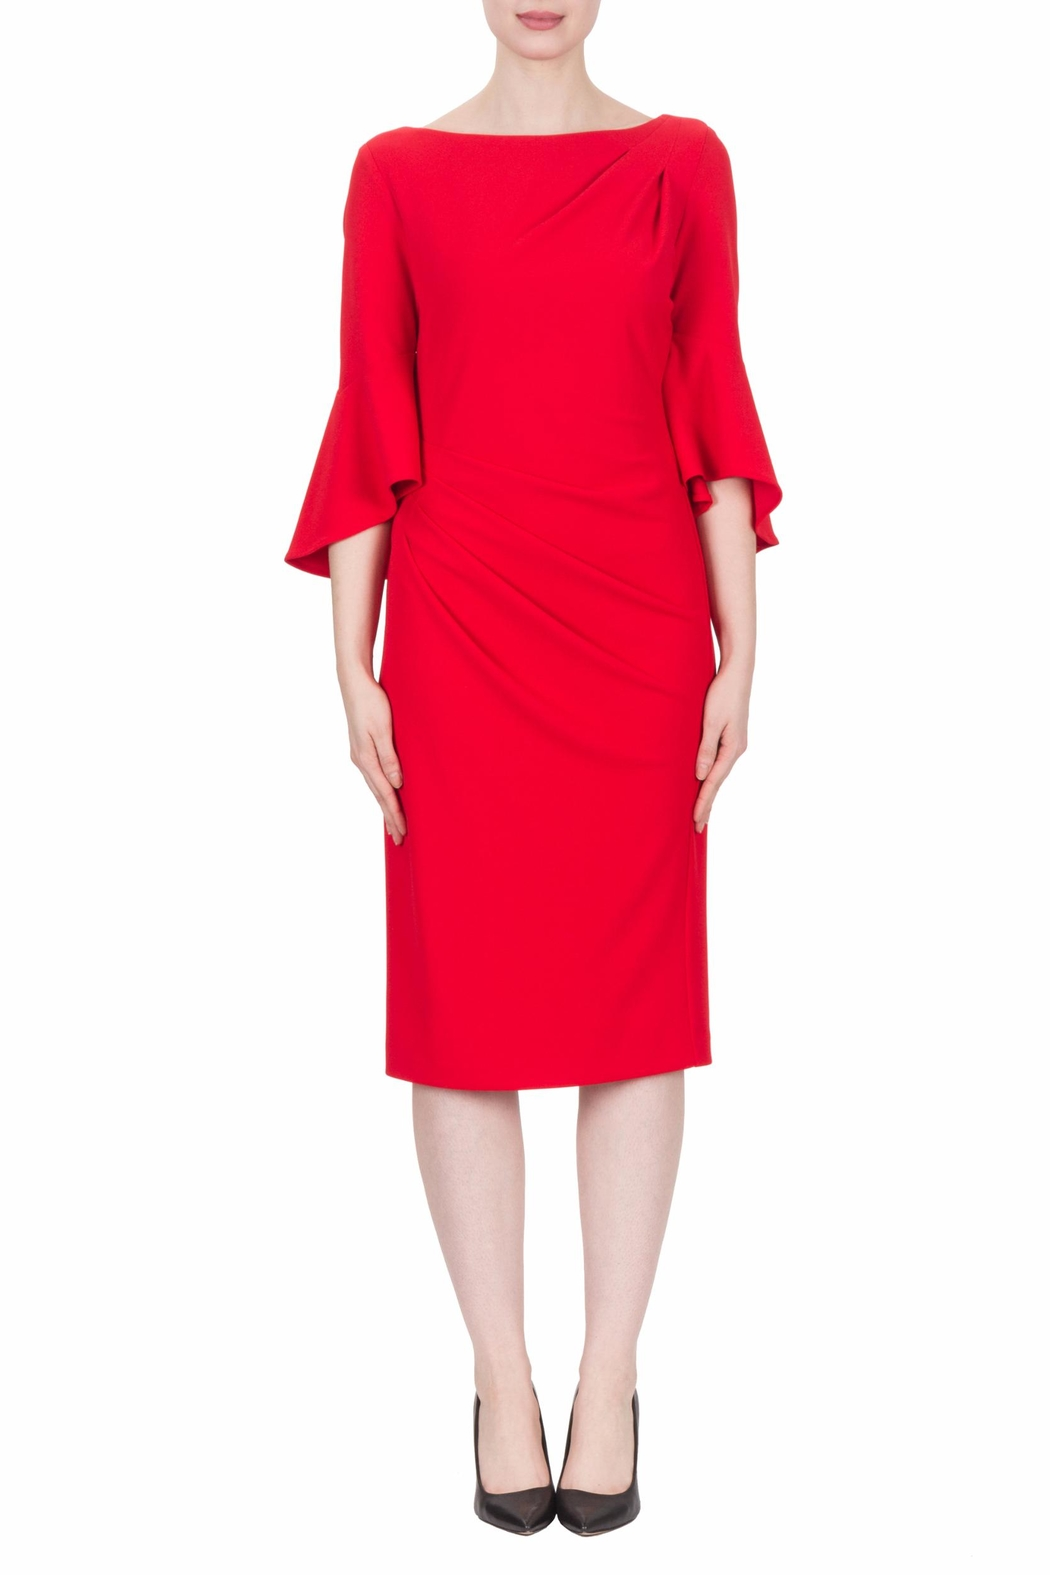 Joseph Ribkoff Lipstick Red Dress - Main Image